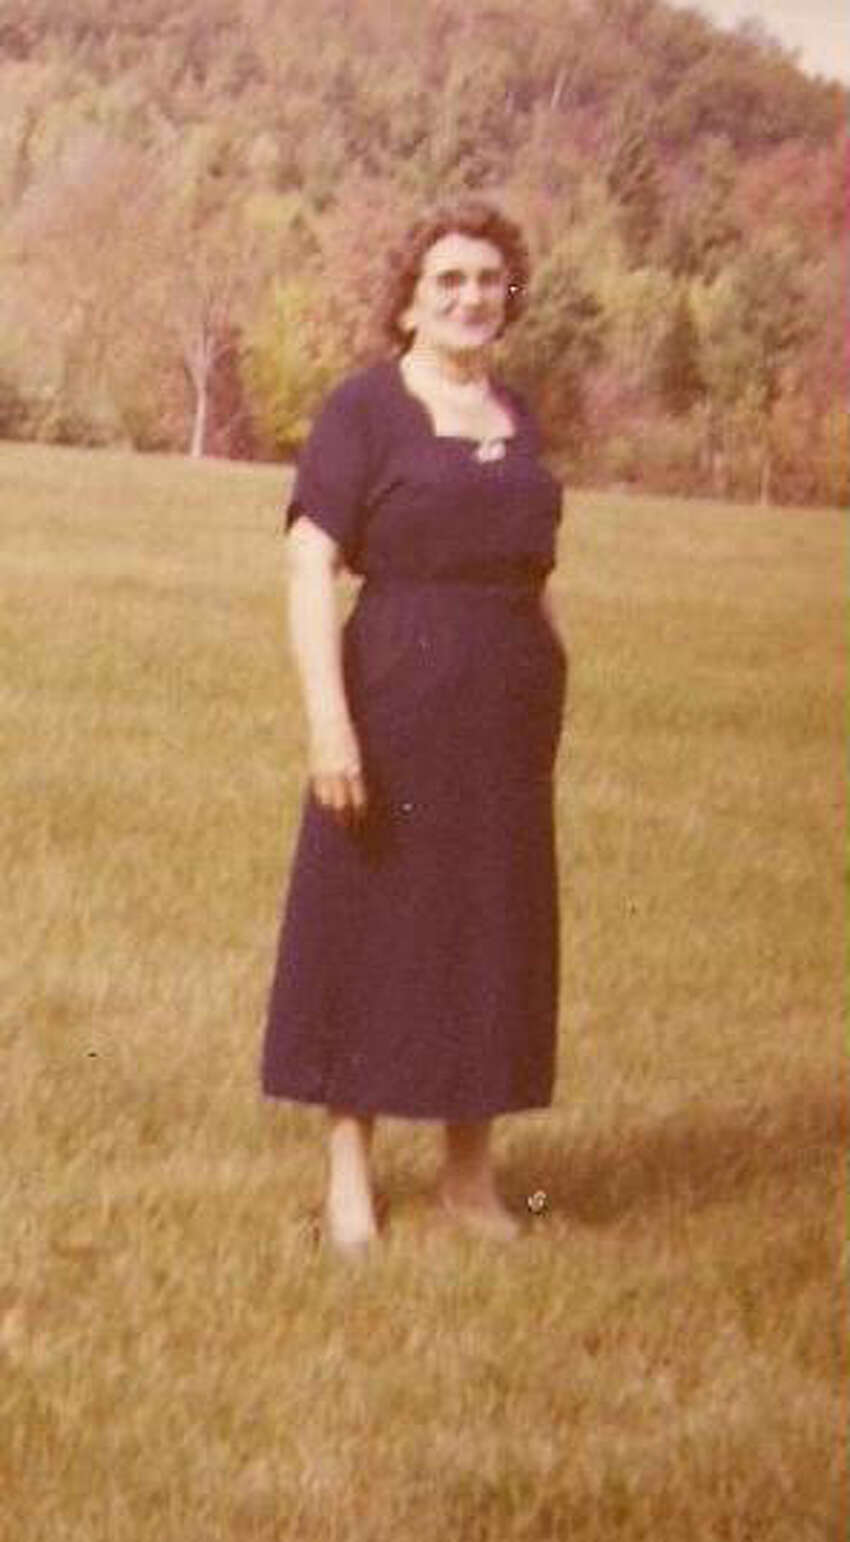 Iva Mildred Foss, then 60, was reported missing from Rumney, N.H., by her husband on November 20, 1960. Her car was later found on a side street in Johnstown. She was reportedly shot during a fight with her ex-boyfriend's wife, with her remains then dumped in an inactive New Hampshire mine. However, investigators found these claims to be dubious and her body was never found. Anyone with information is asked to call the Gloversville Police Department.